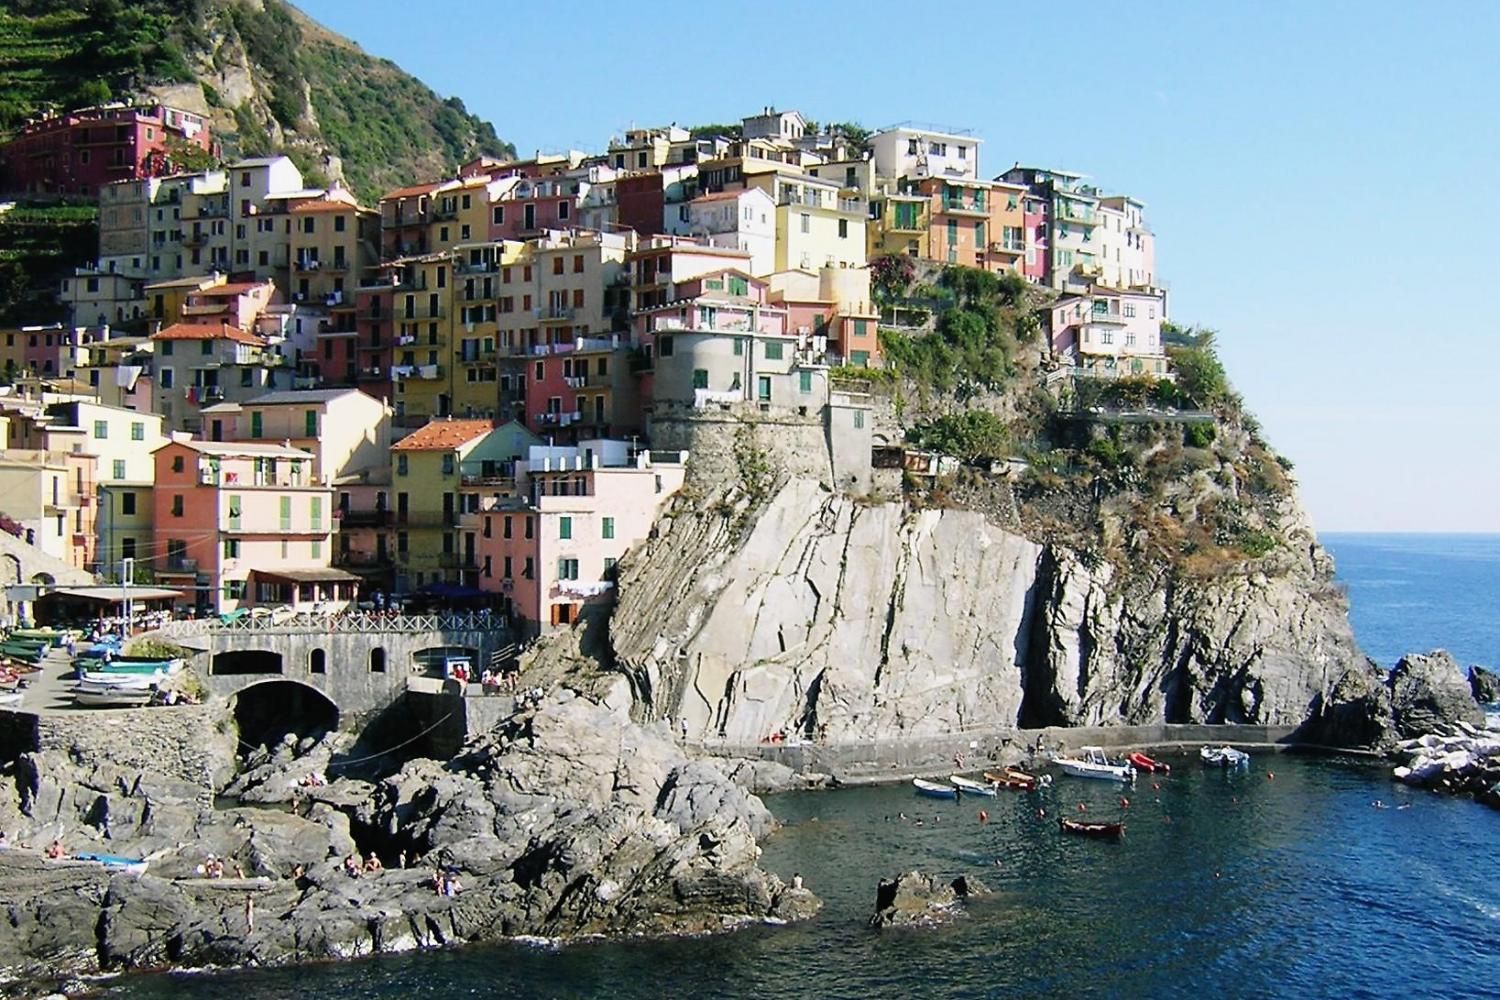 Cinque Terre region is filled with small cliff villages along the coast